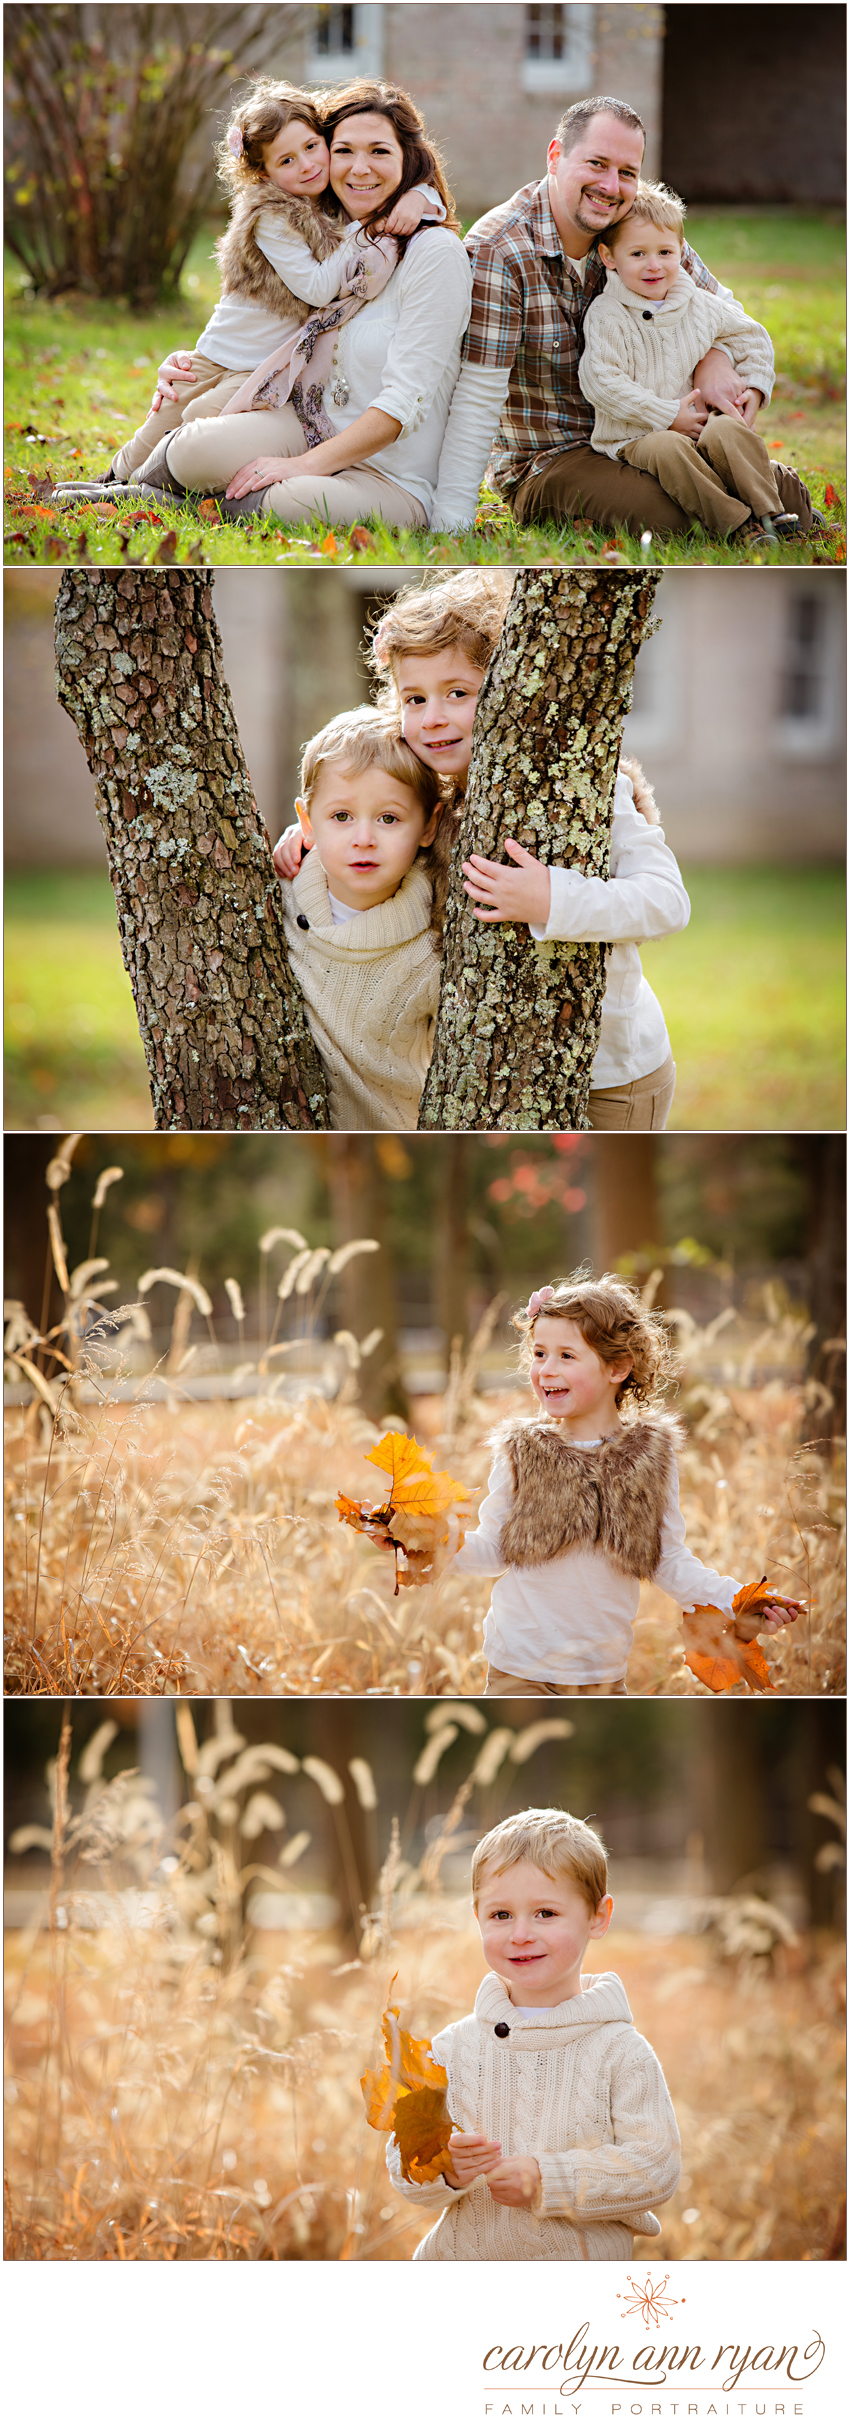 Warmhearted Charlotte, NC Family Photography